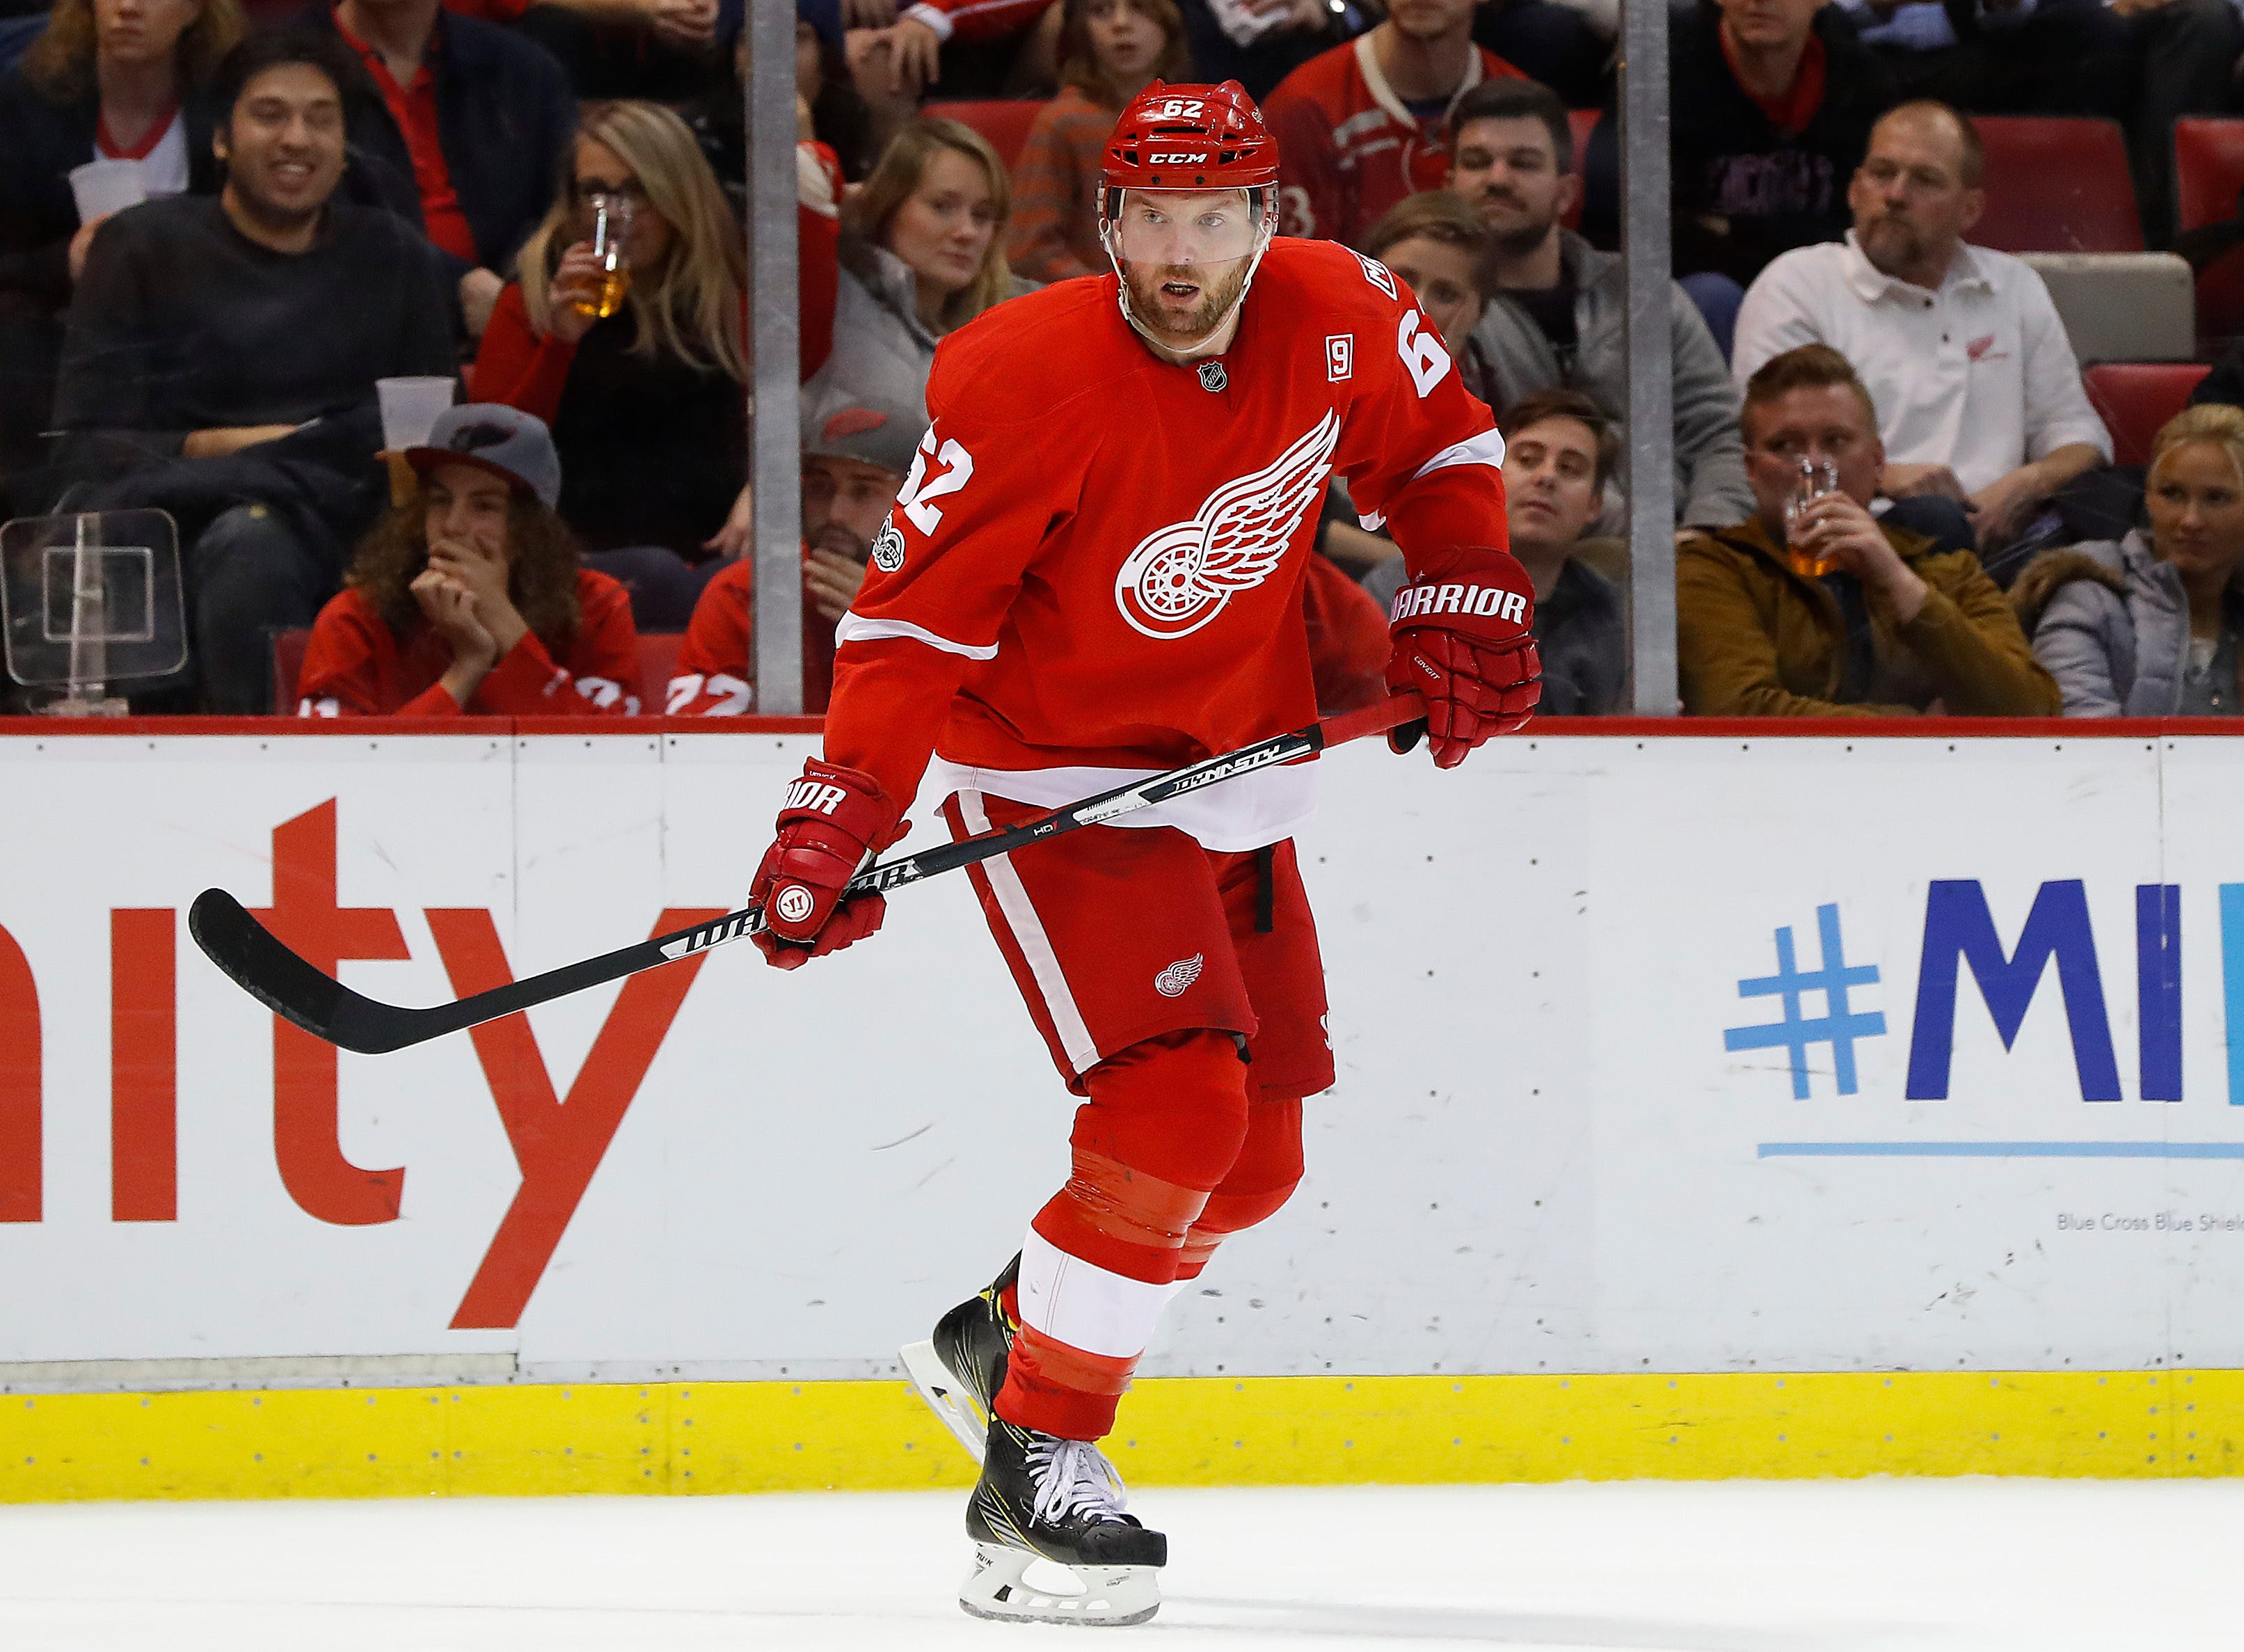 801e4d669dd http://www.freep.com/picture-gallery/sports/nhl/red-wings/2014/08/27 ...